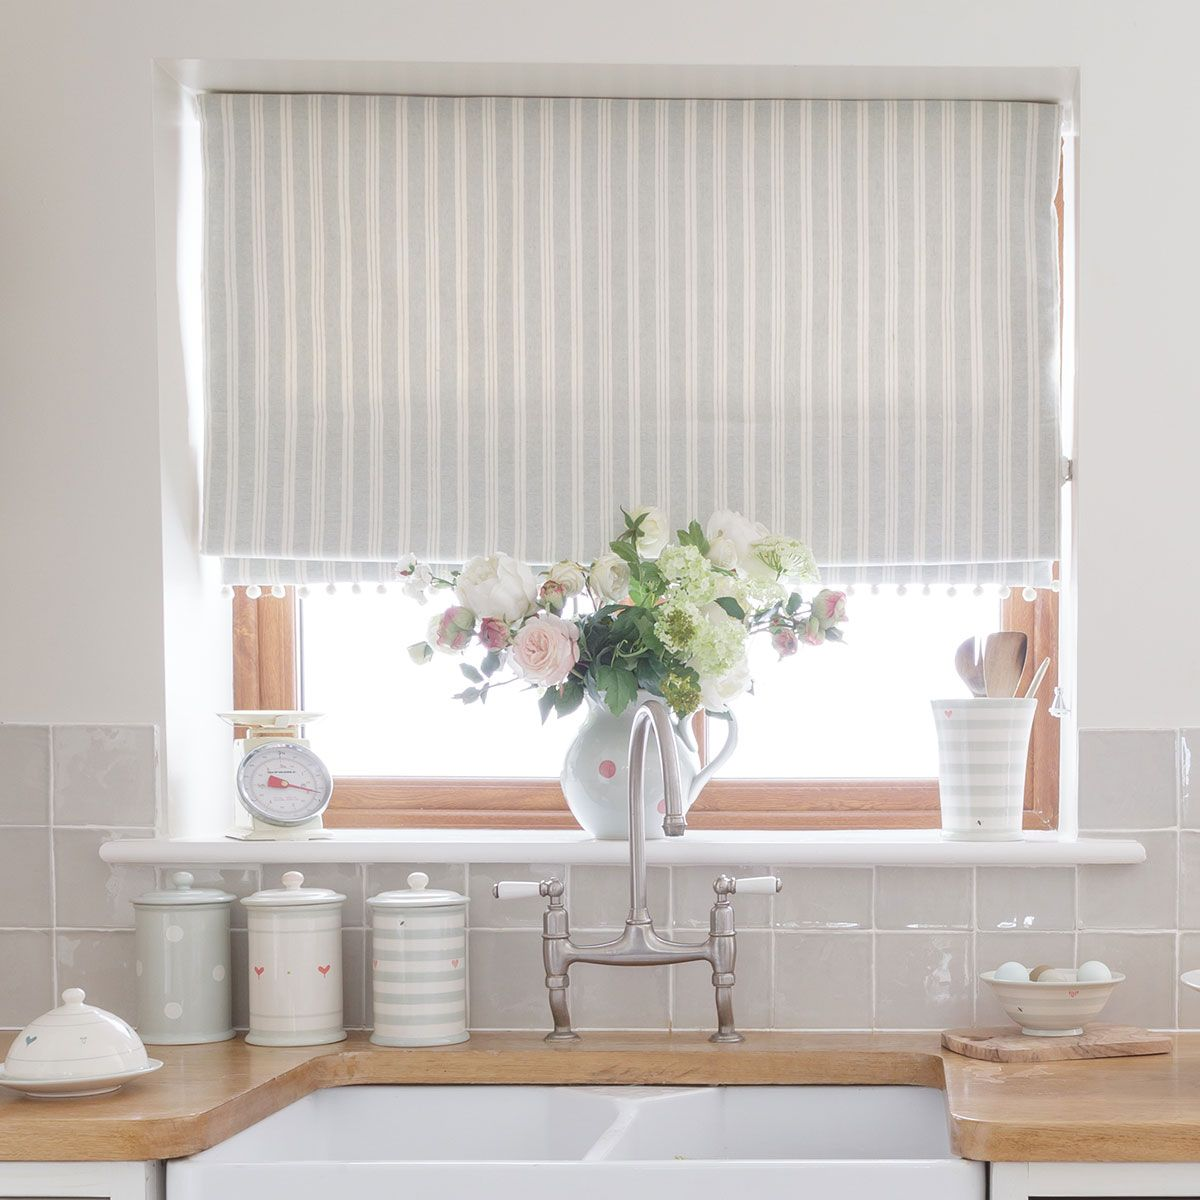 Patterned Blinds For Kitchen Country Blind Inspiration Sea Ivory Cambridge Stripe Blinds